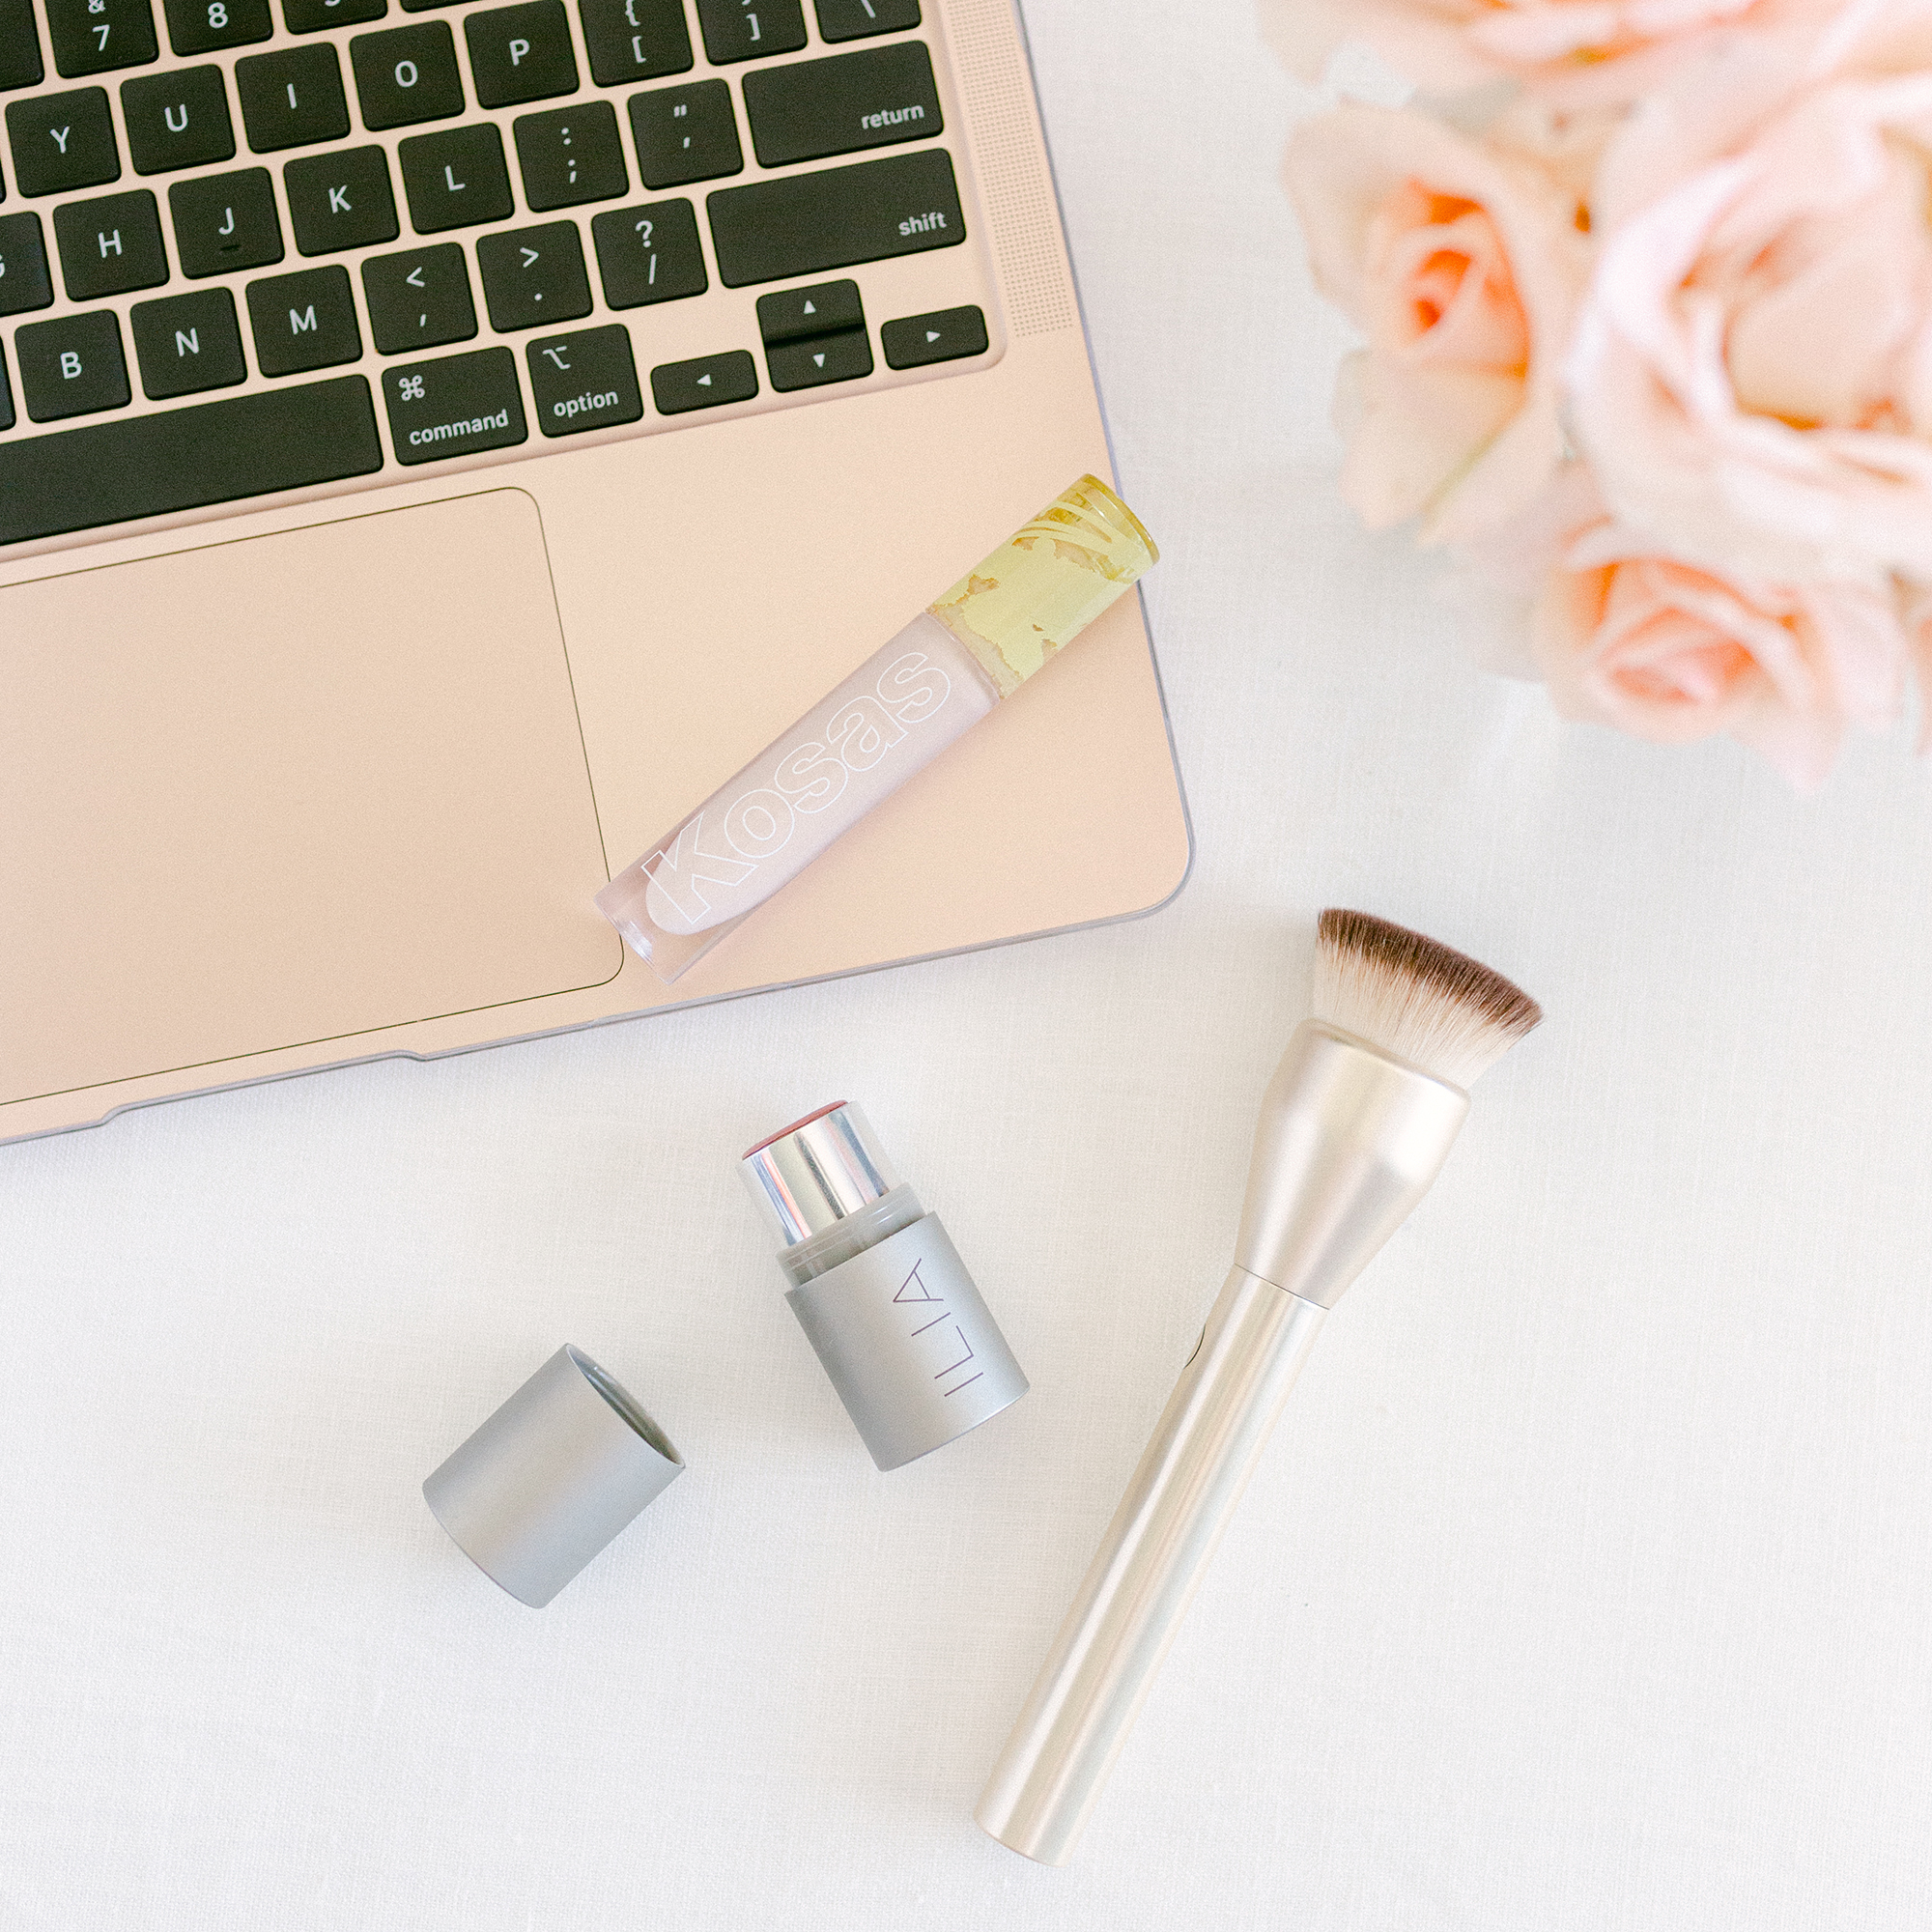 The Top 5 Tips for Shopping for Makeup Online